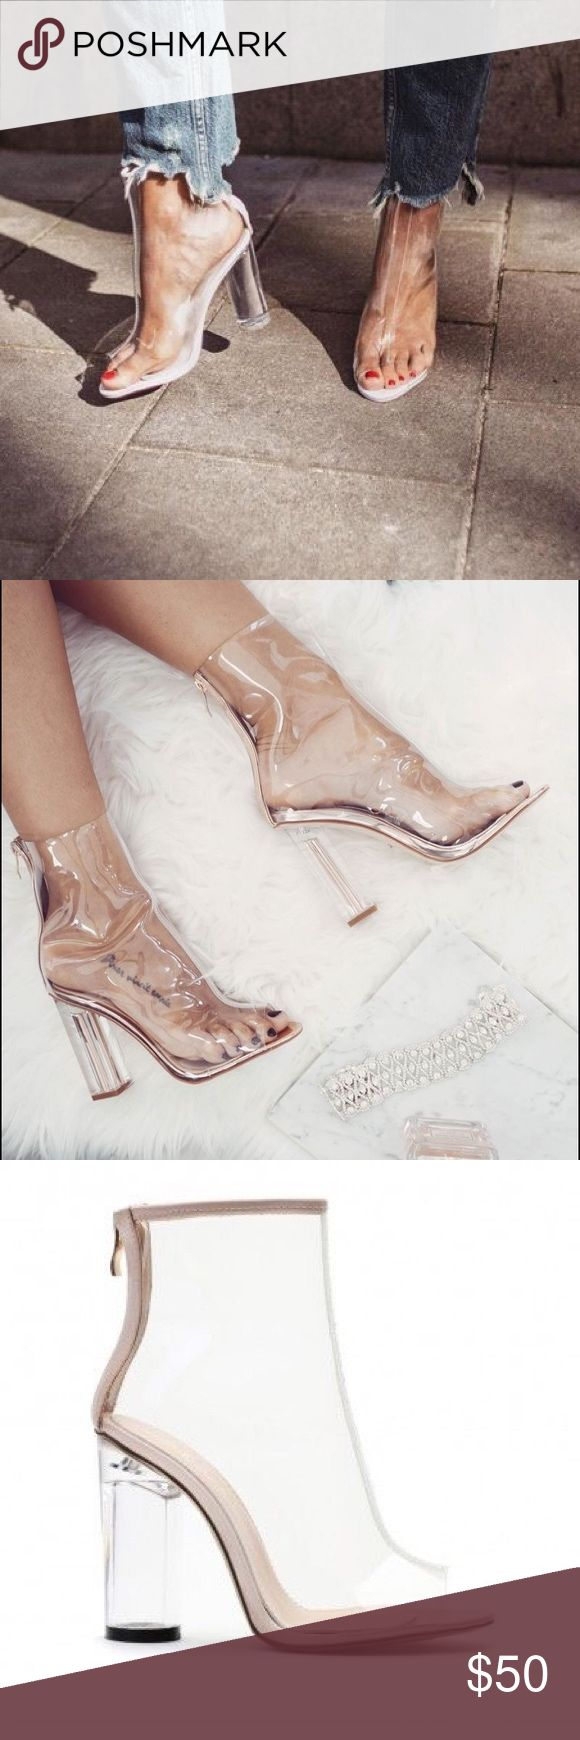 Clear Ankle Boots THIS IS A FLASH SALE!!!✨✨ this listing will only be up for the next 3 hours These Perspex ankle boots are super trendy and great for the summer! Available in a few sizes! Grab them while you can Shoes Ankle Boots & Booties